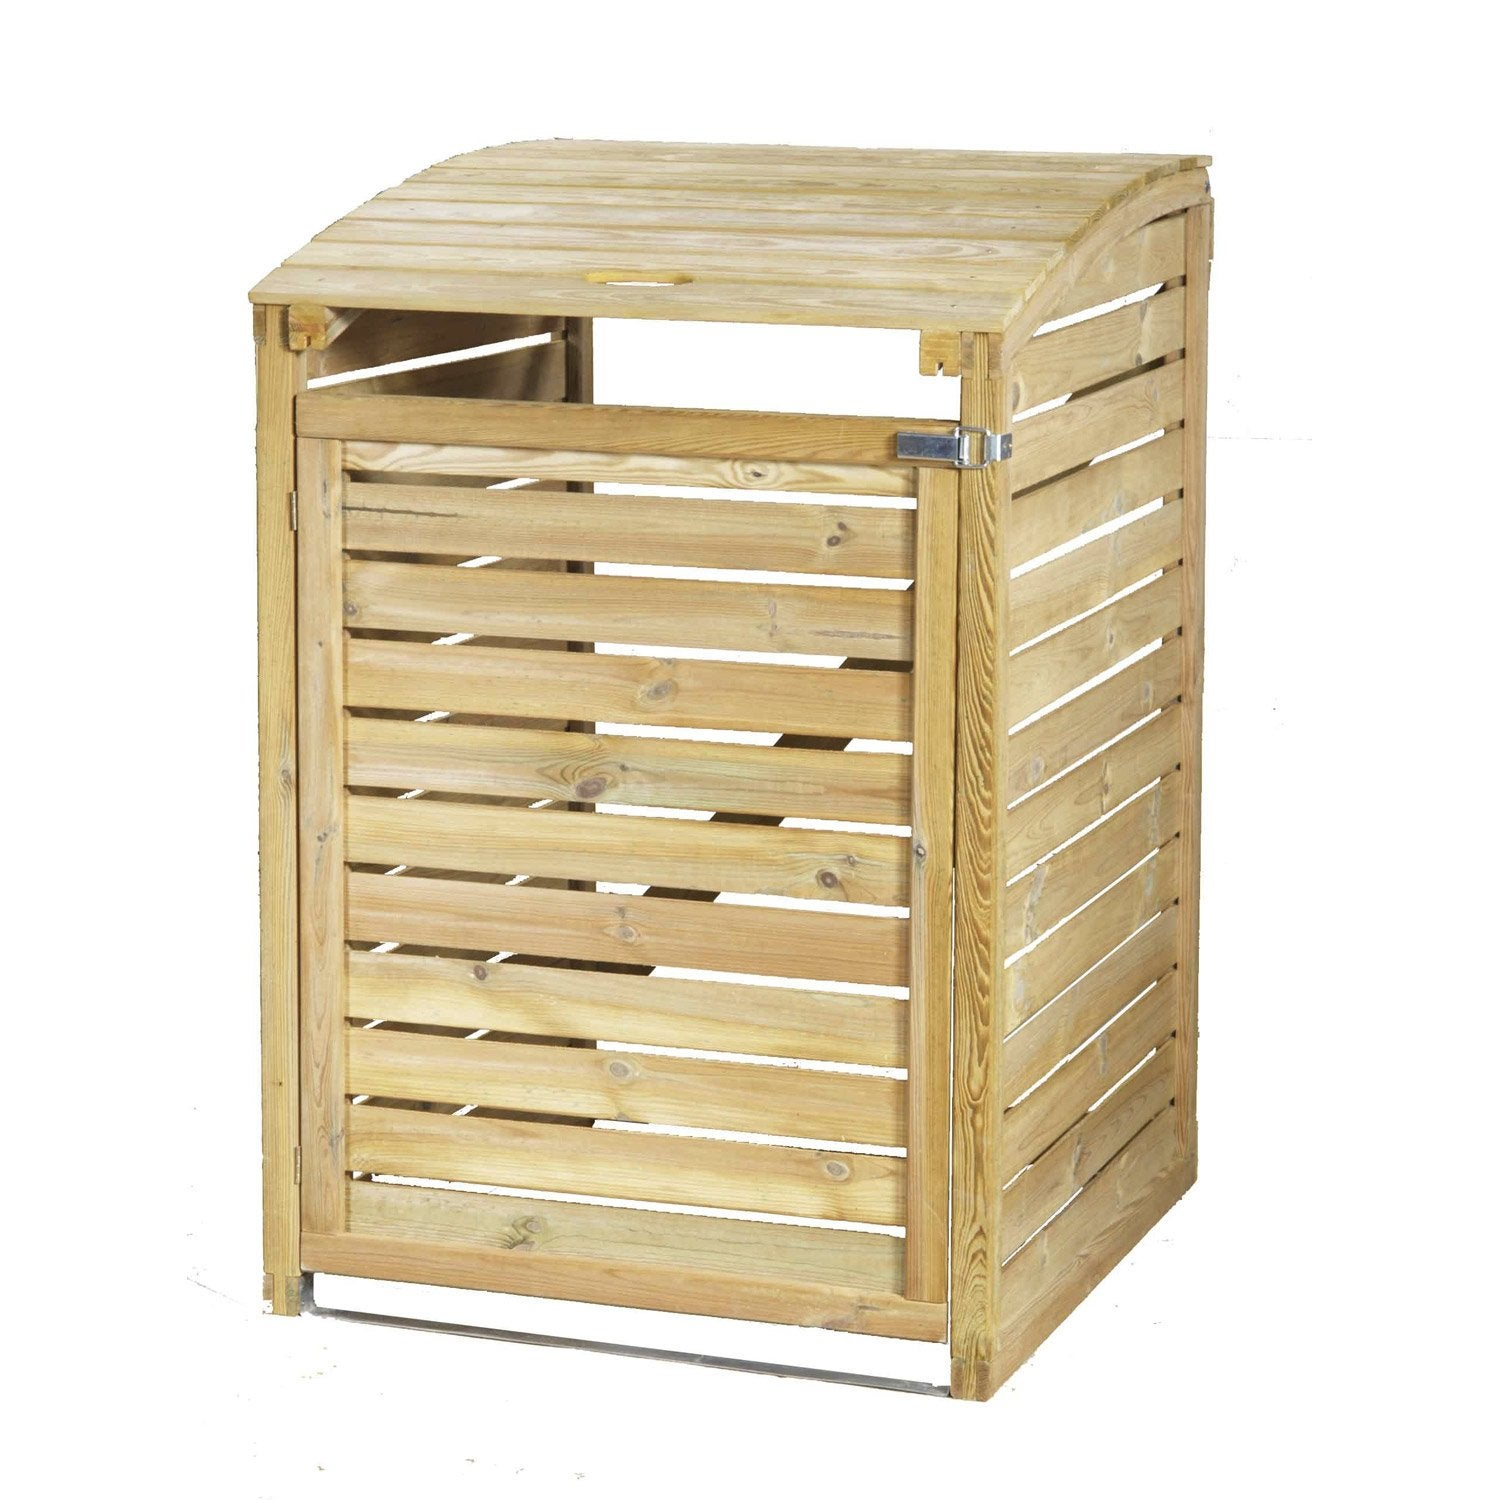 cache poubelle simple en bois simple m leroy merlin